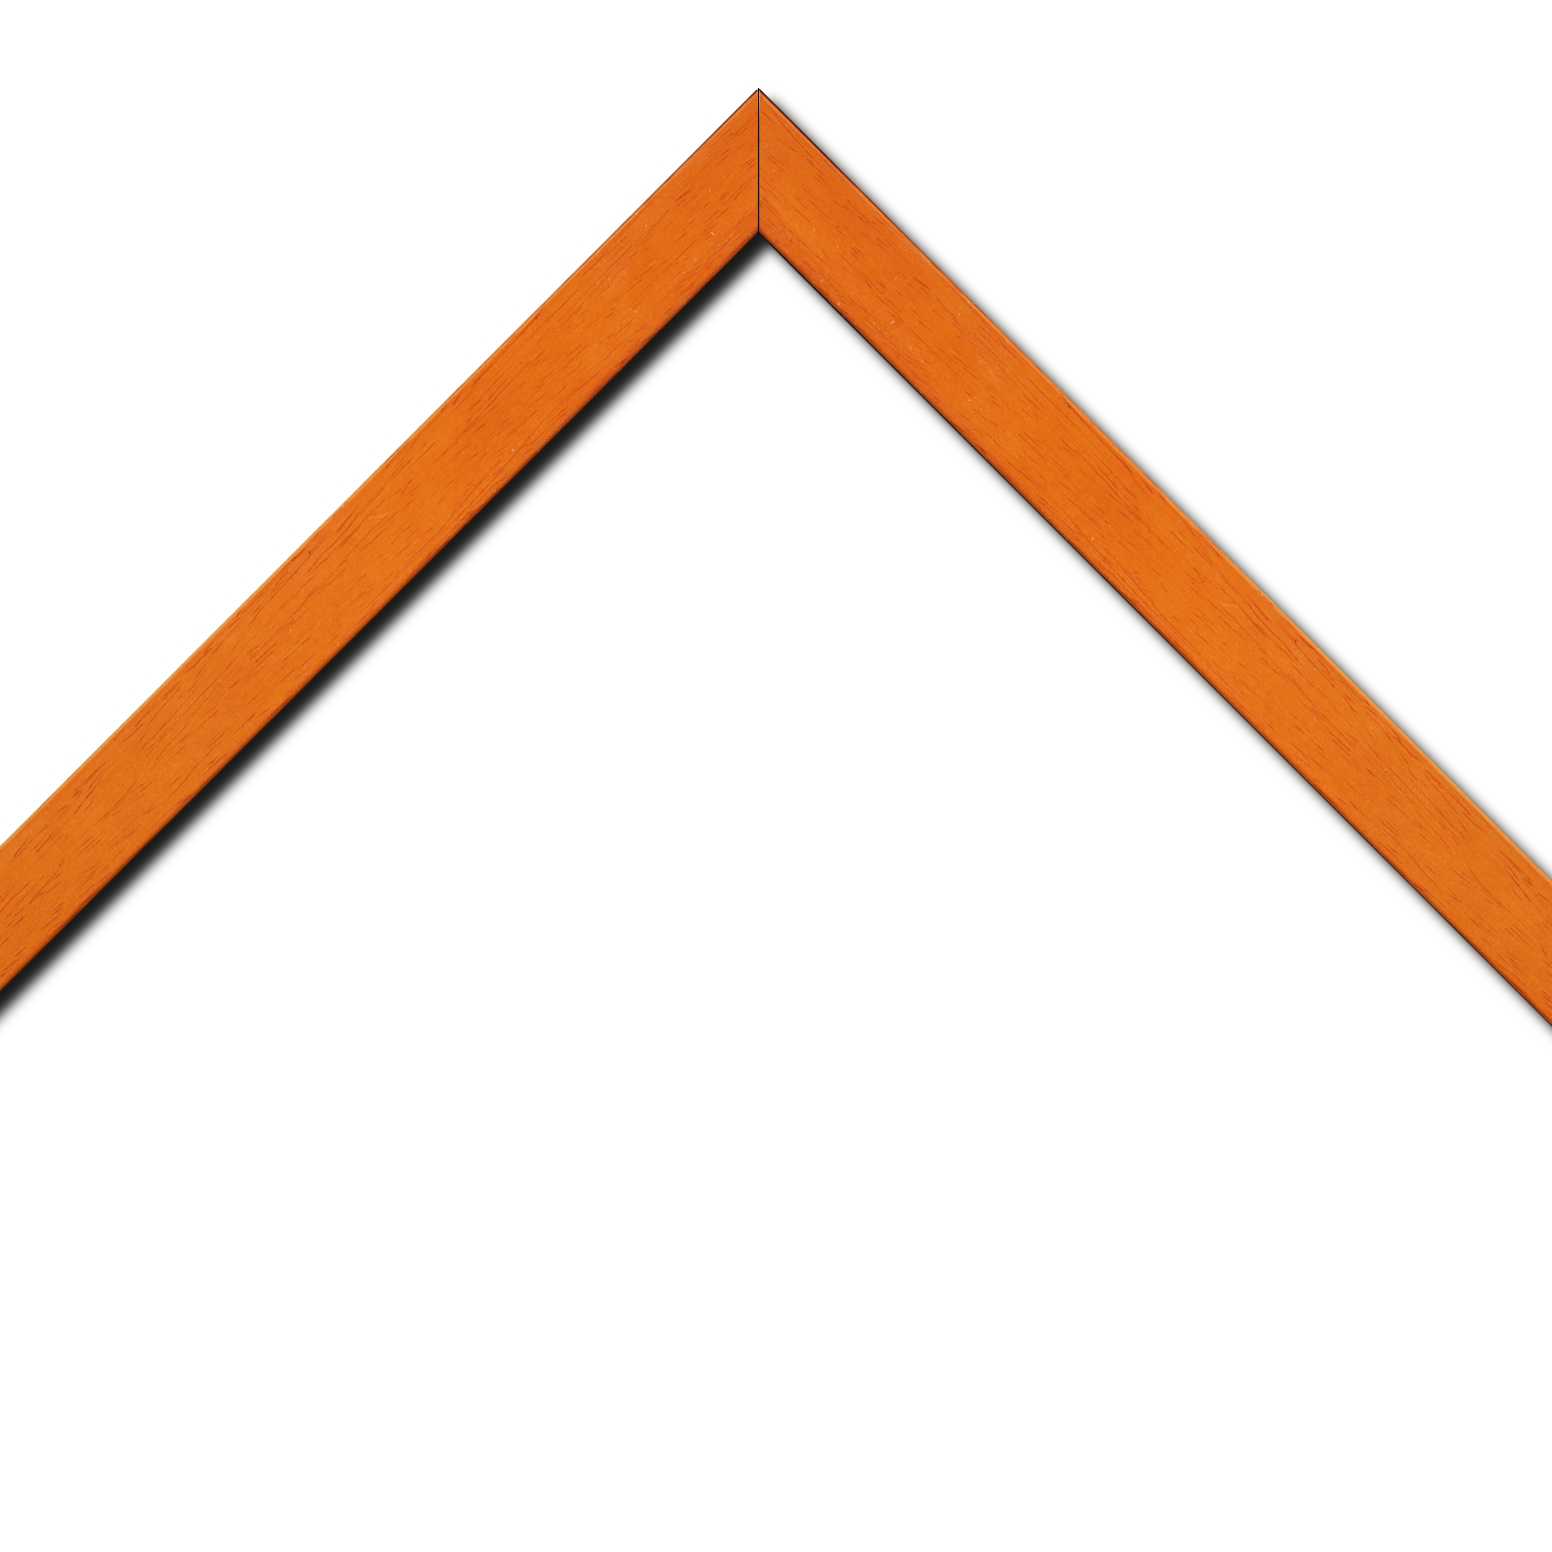 Baguette bois profil plat largeur 2.5cm couleur orange satiné